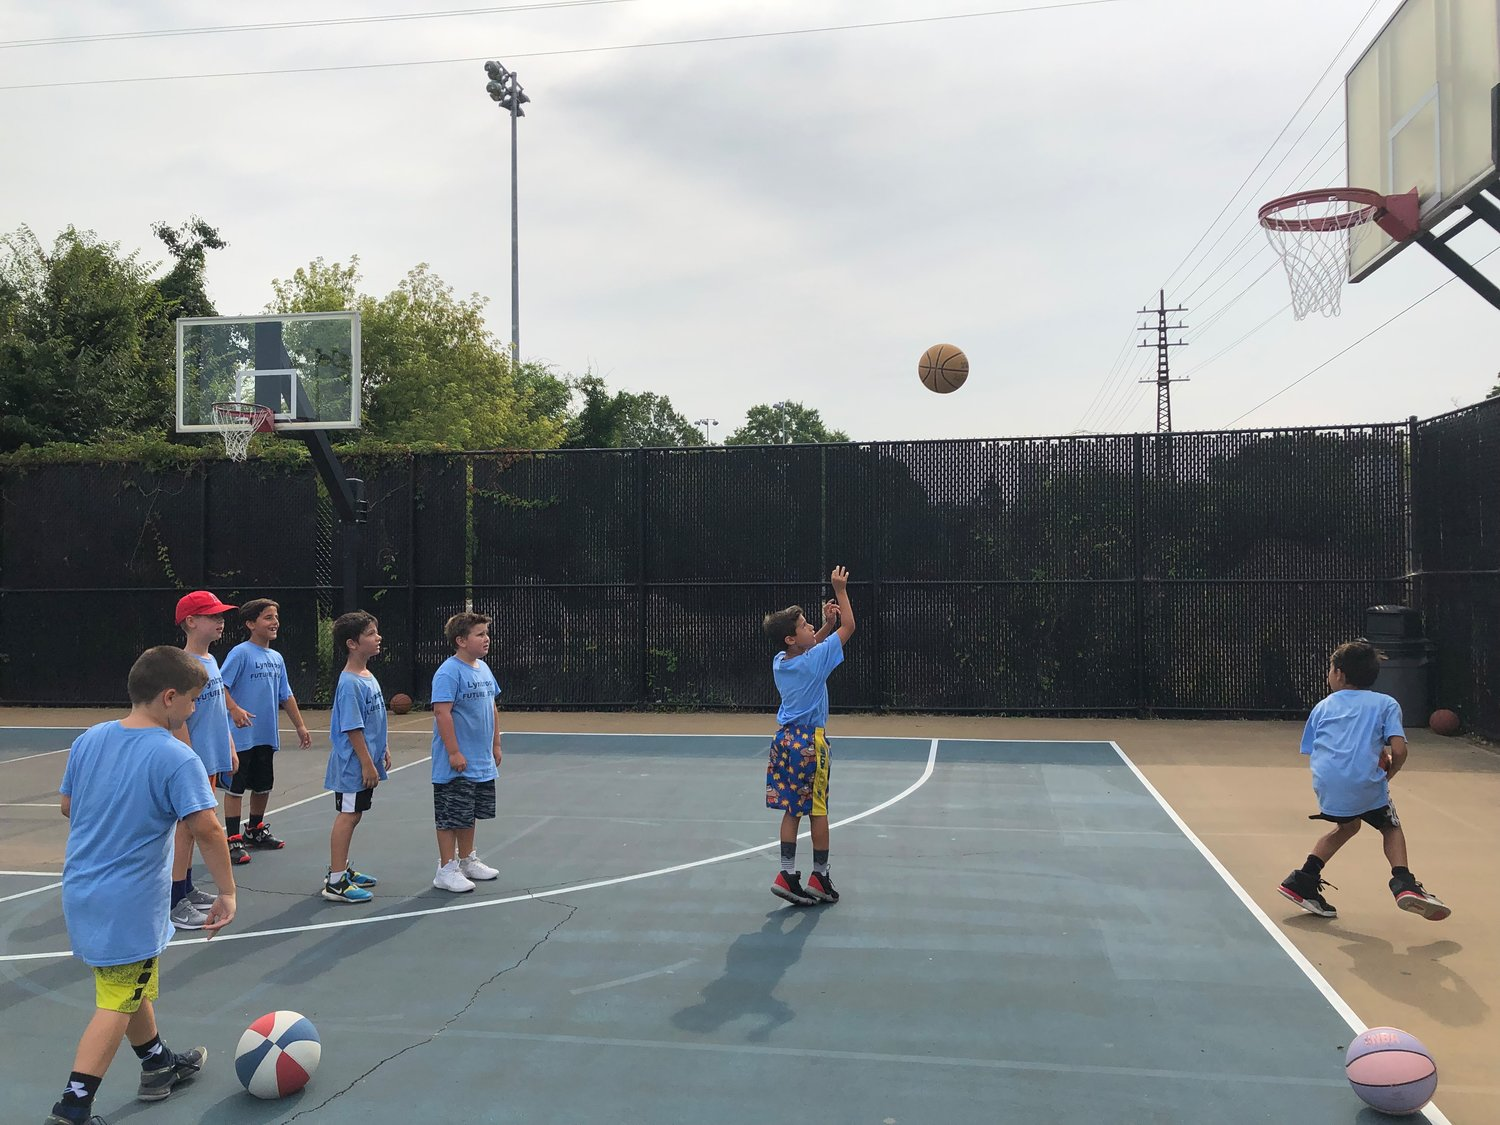 Campers worked on learning the fundamentals of the game, including shooting